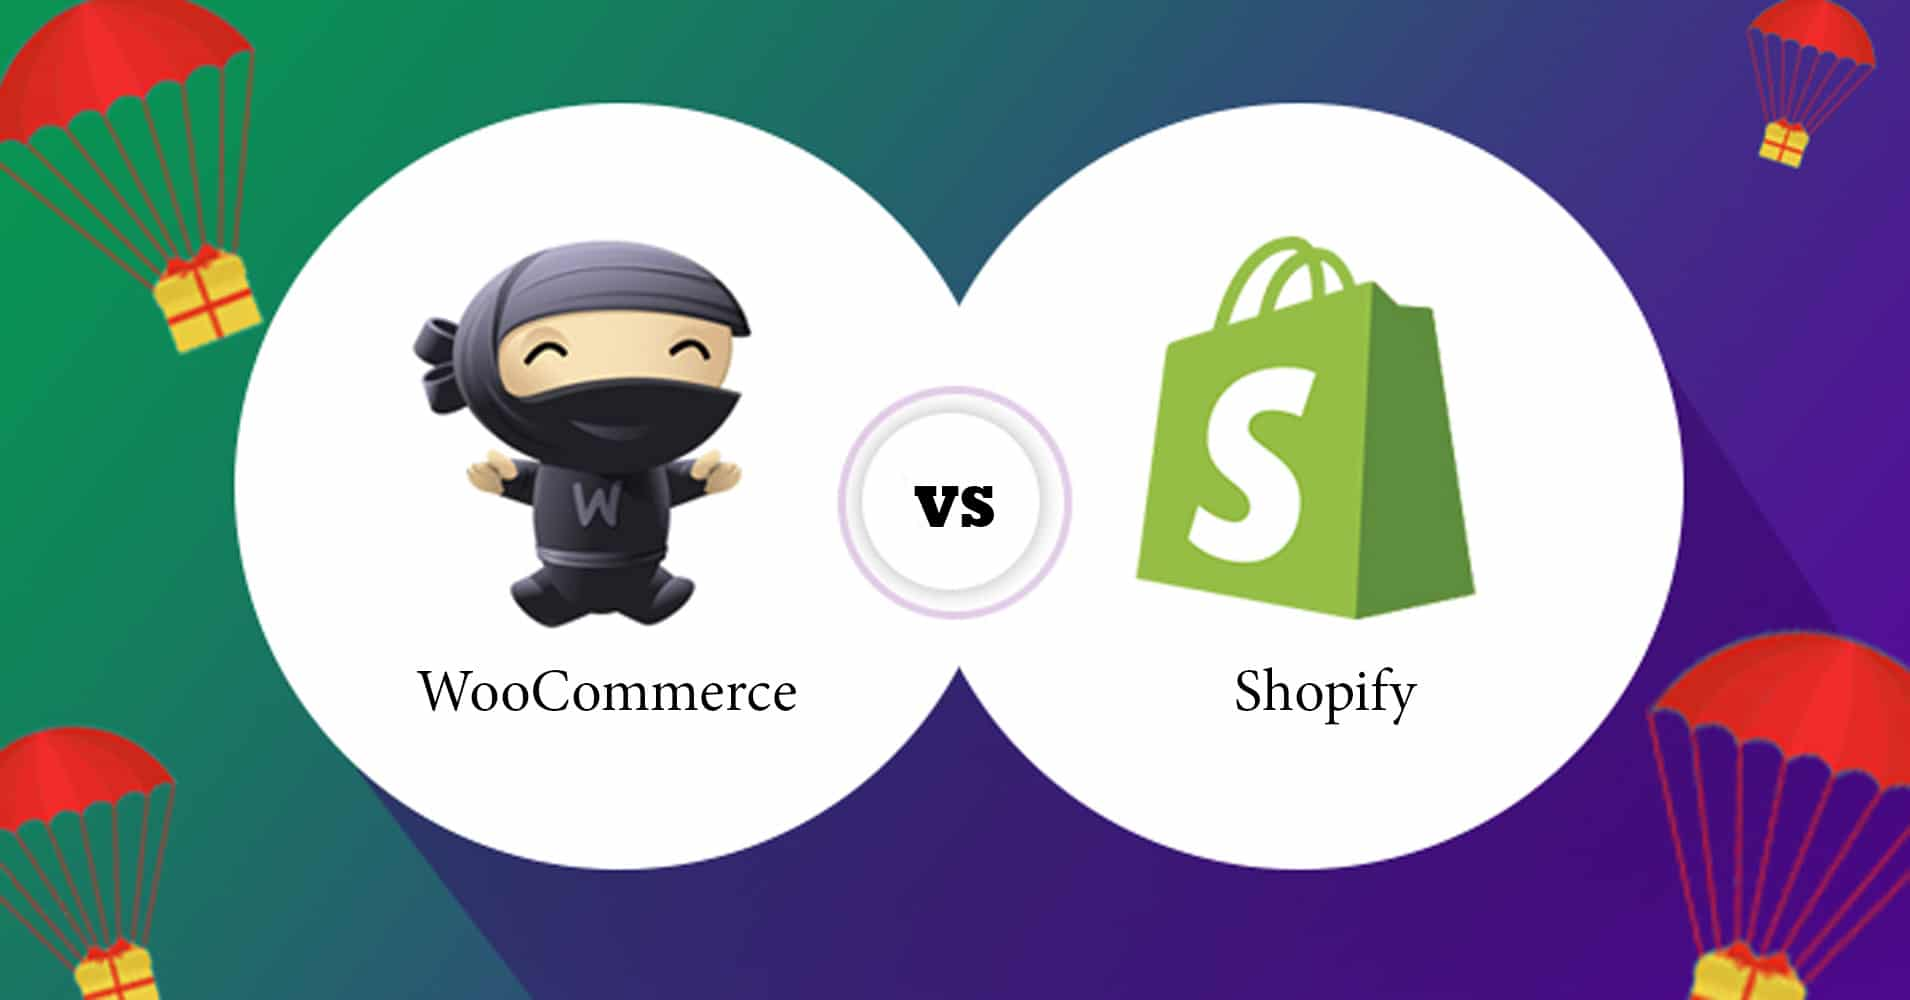 WooCommerce-vs-Shopify-comparison-image3